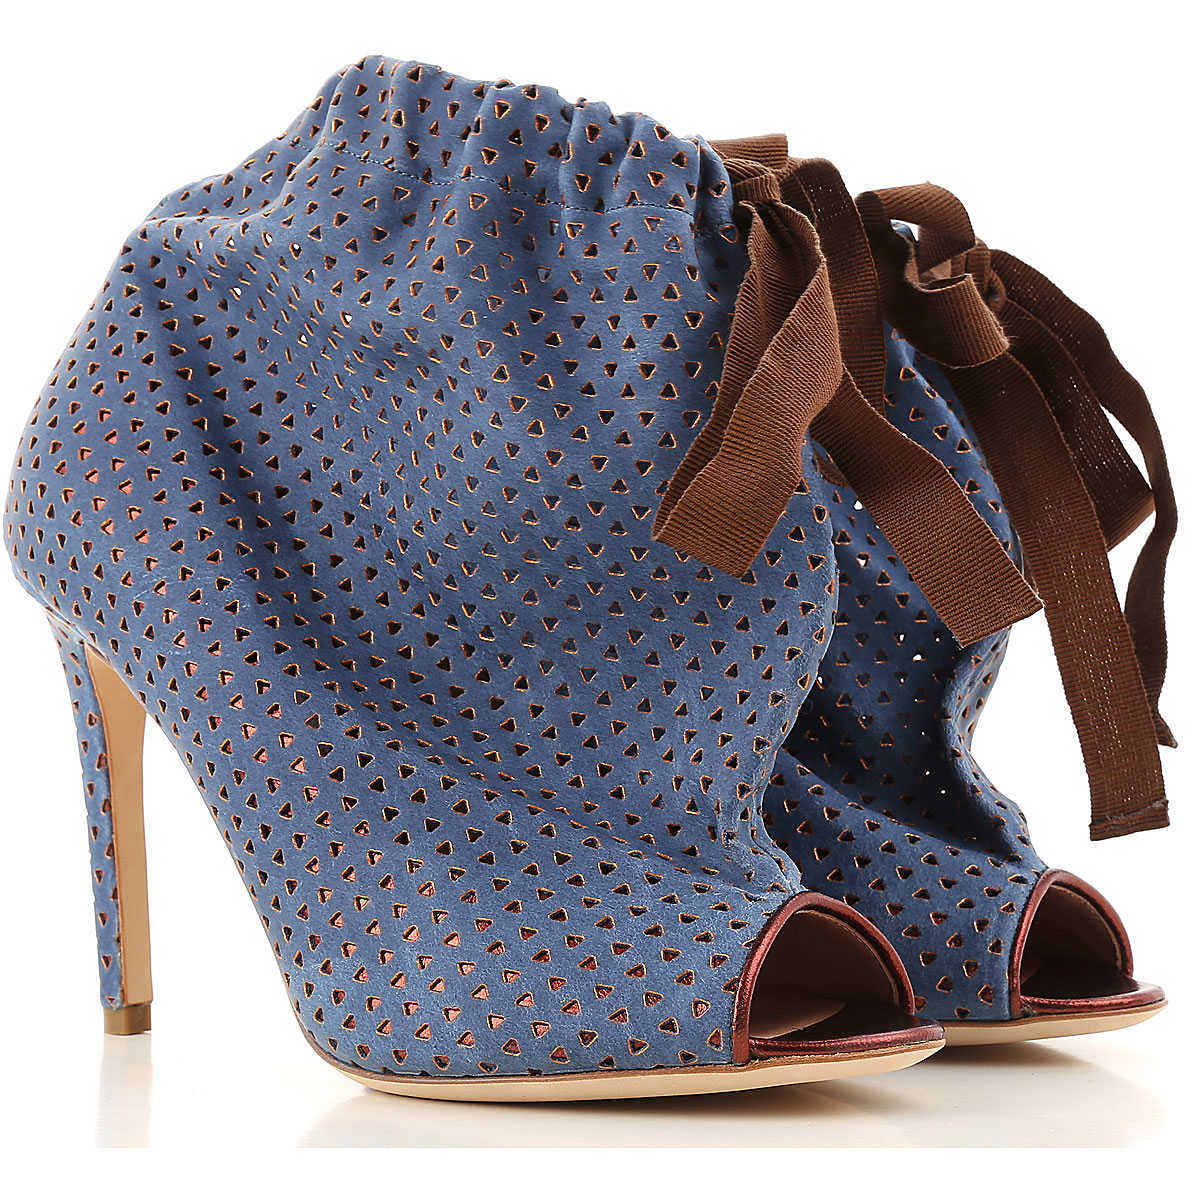 Vivienne Westwood Boots for Women Booties On Sale in Outlet - GOOFASH